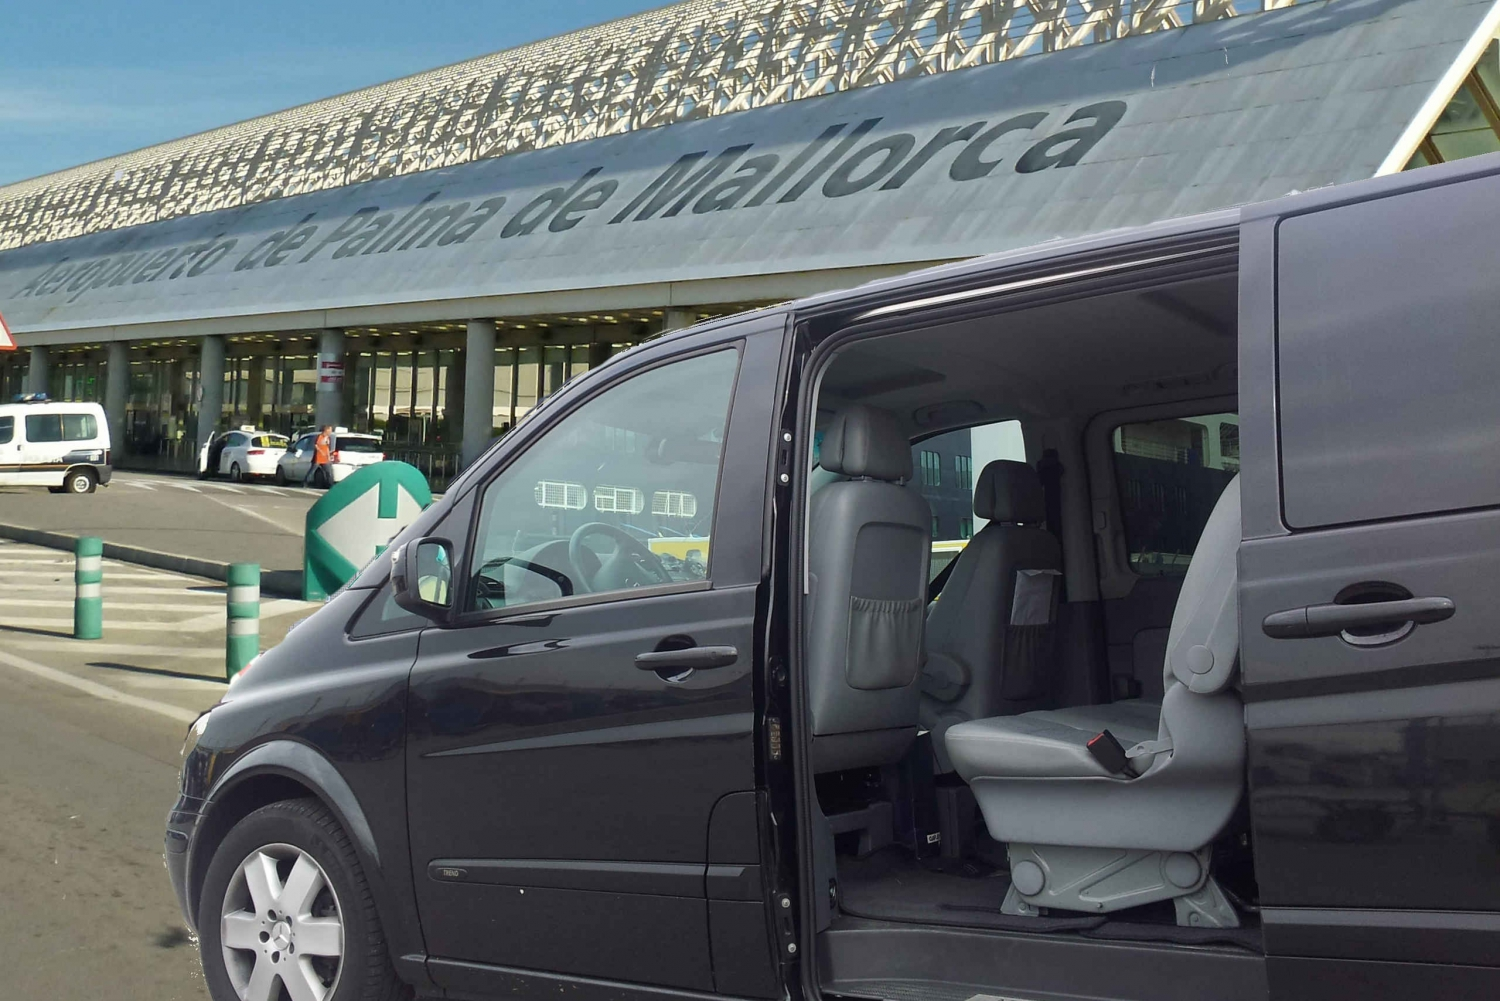 Mallorca Hotels to Palma Airport Private Transfer